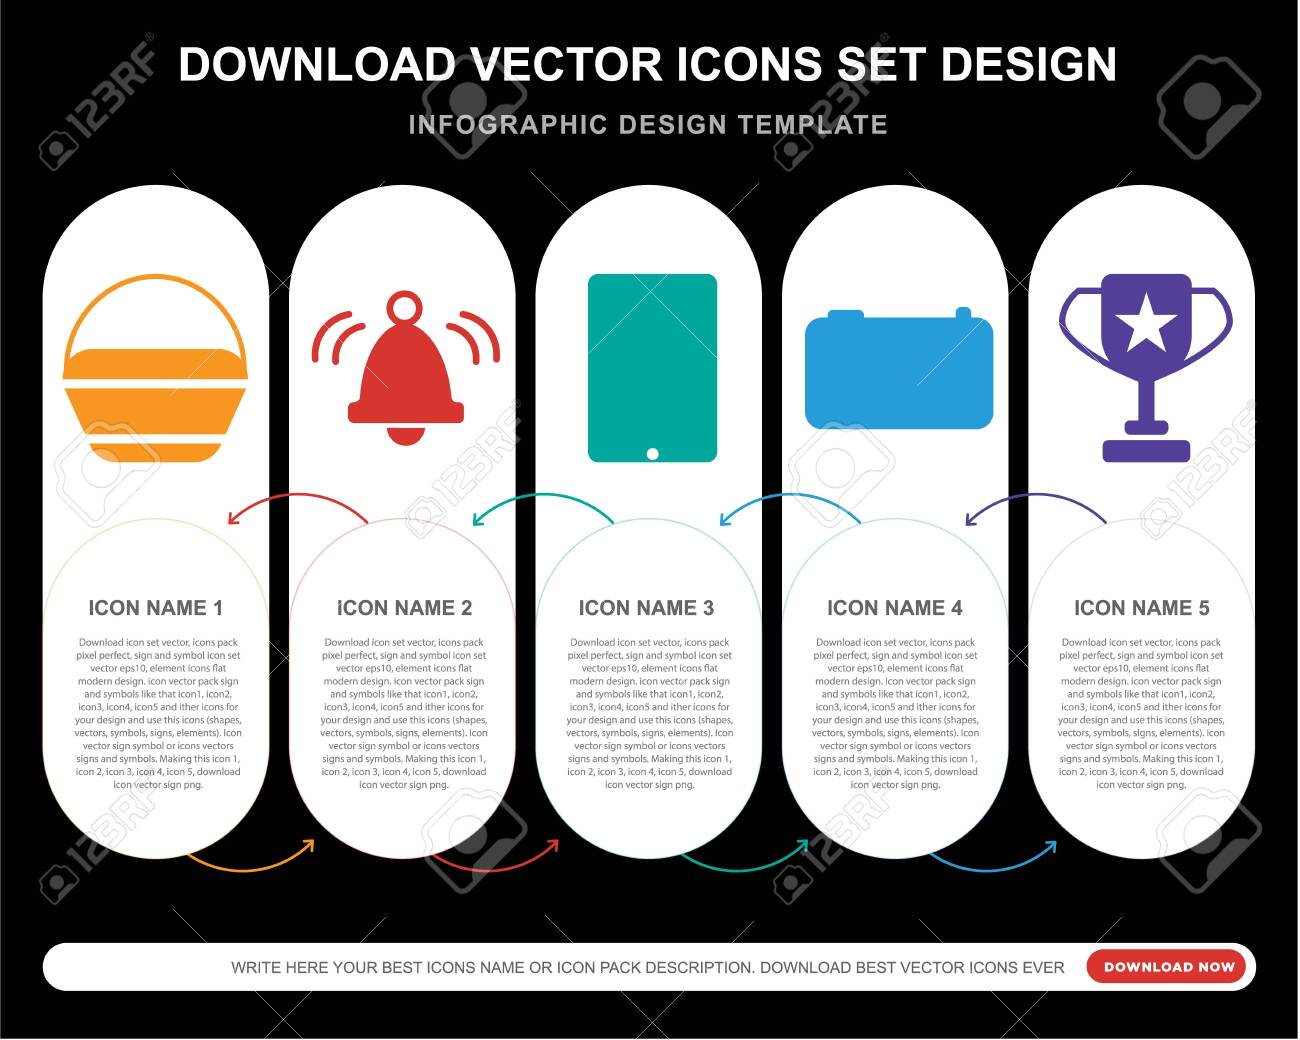 5 vector icons such as Shopping bag, Bell, Camera, Cup for infographic, layout, annual report, pixel perfect icon - 130332311